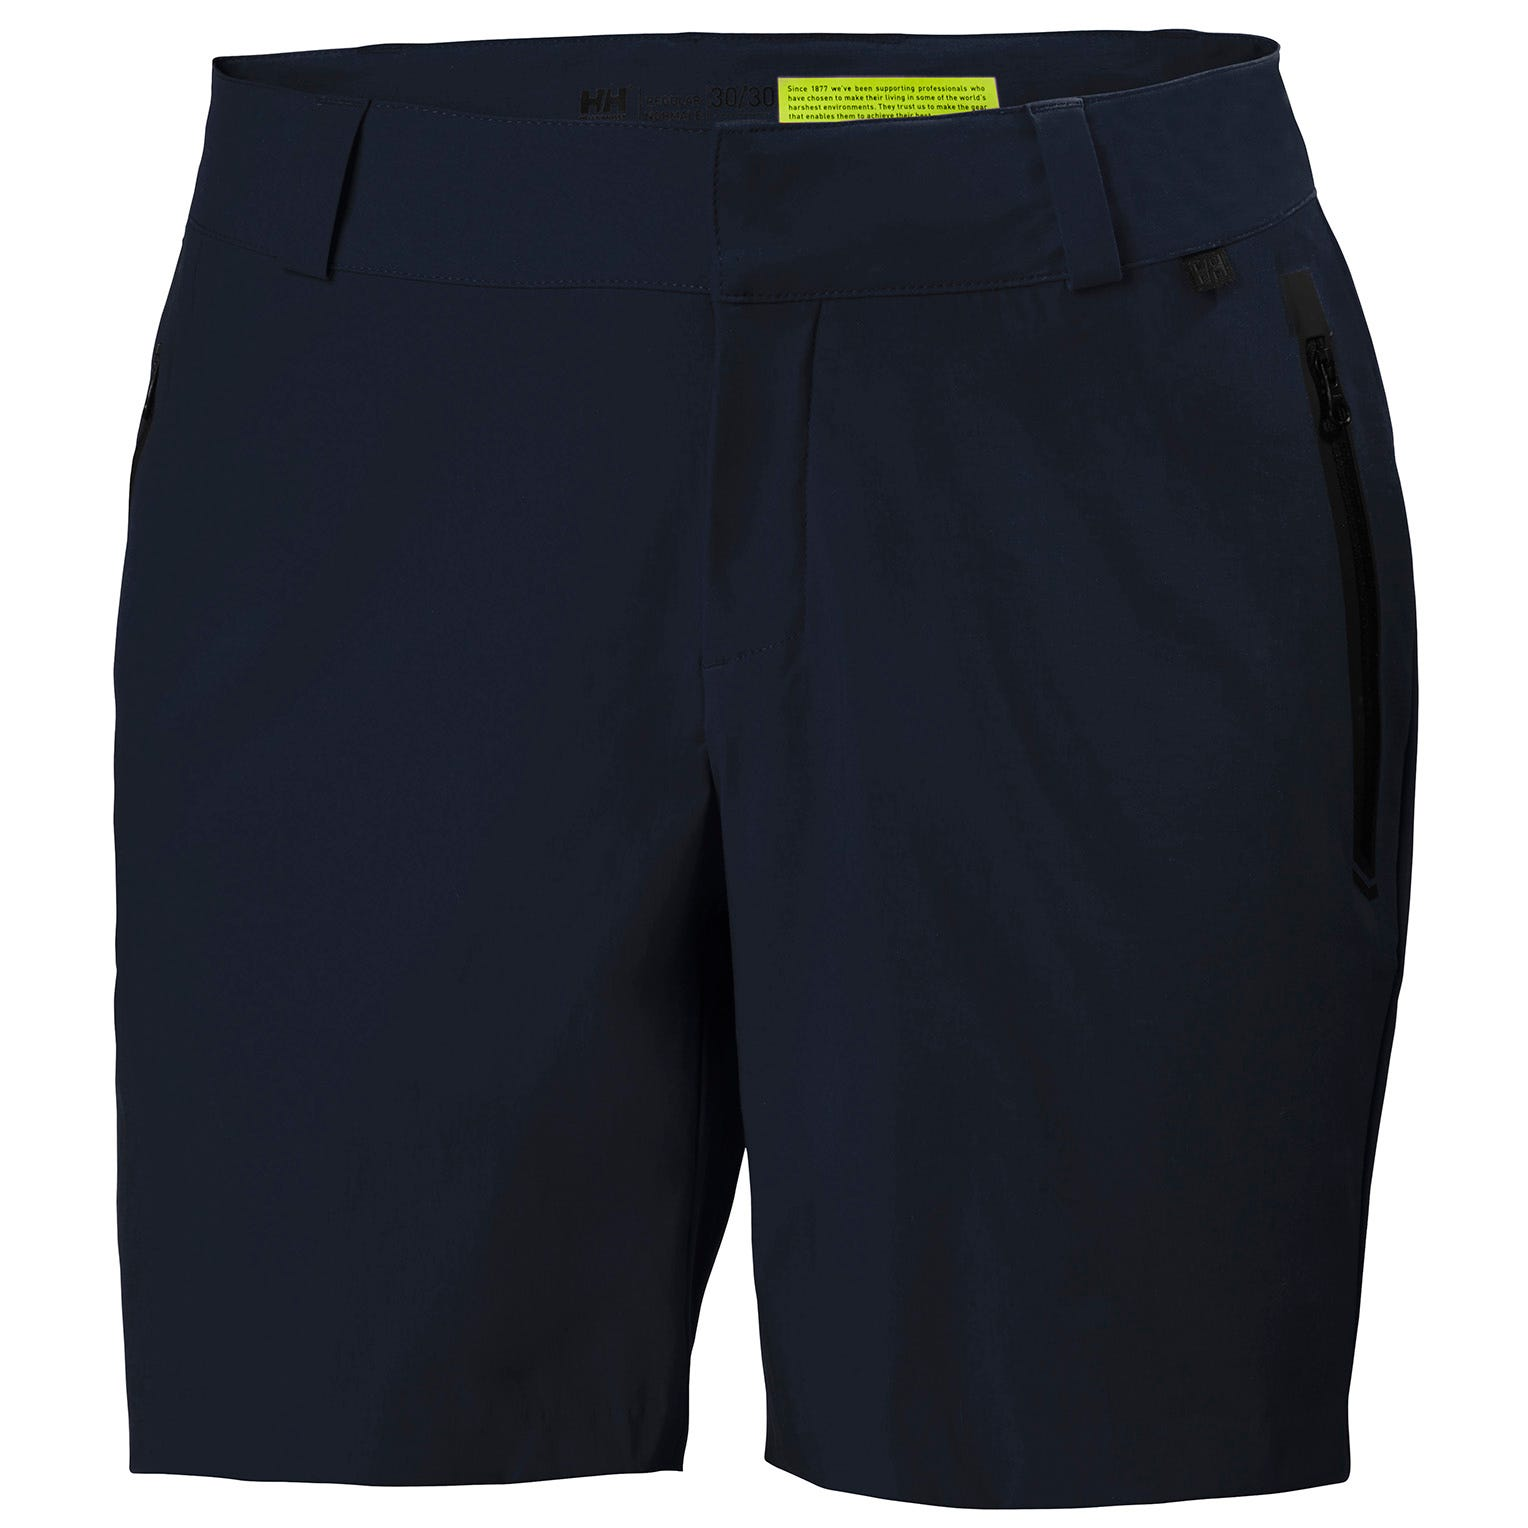 Helly Hansen Womens Hp Racing Shorts Sailing Trouser Navy 31